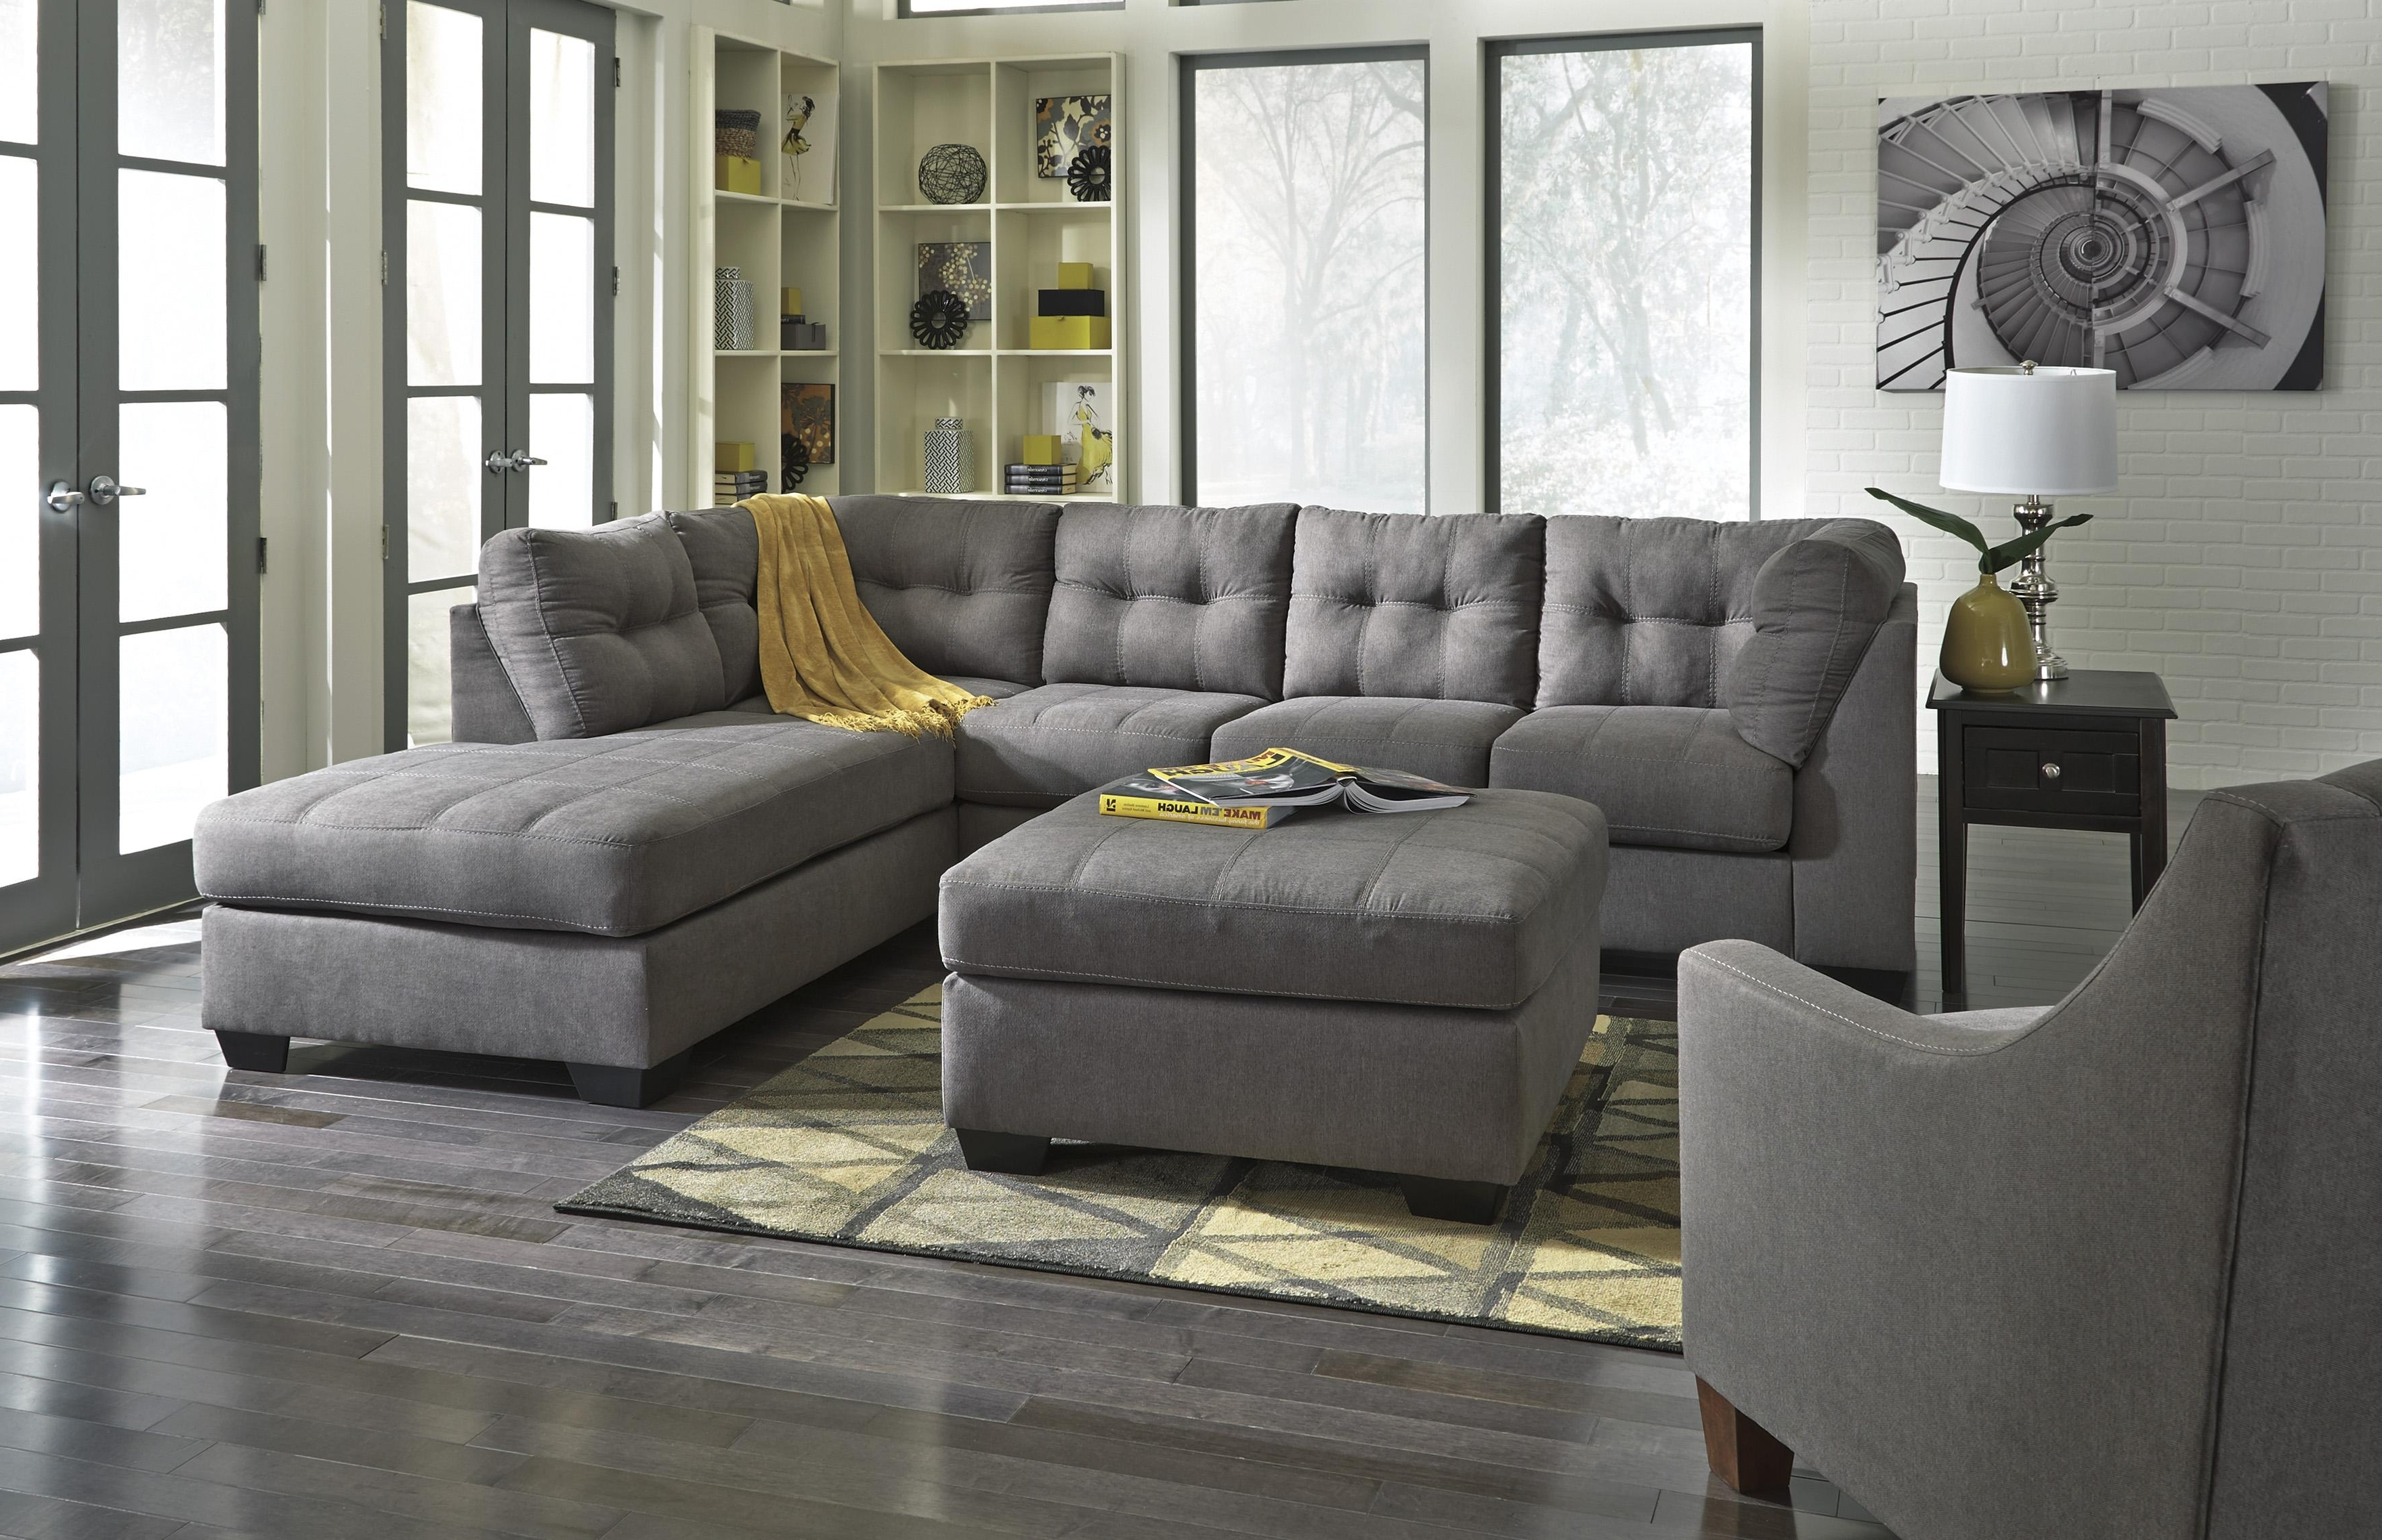 2 Piece Sectional W/ Sleeper Sofa & Right Chaisebenchcraft For Latest 2 Piece Chaise Sectionals (View 11 of 15)